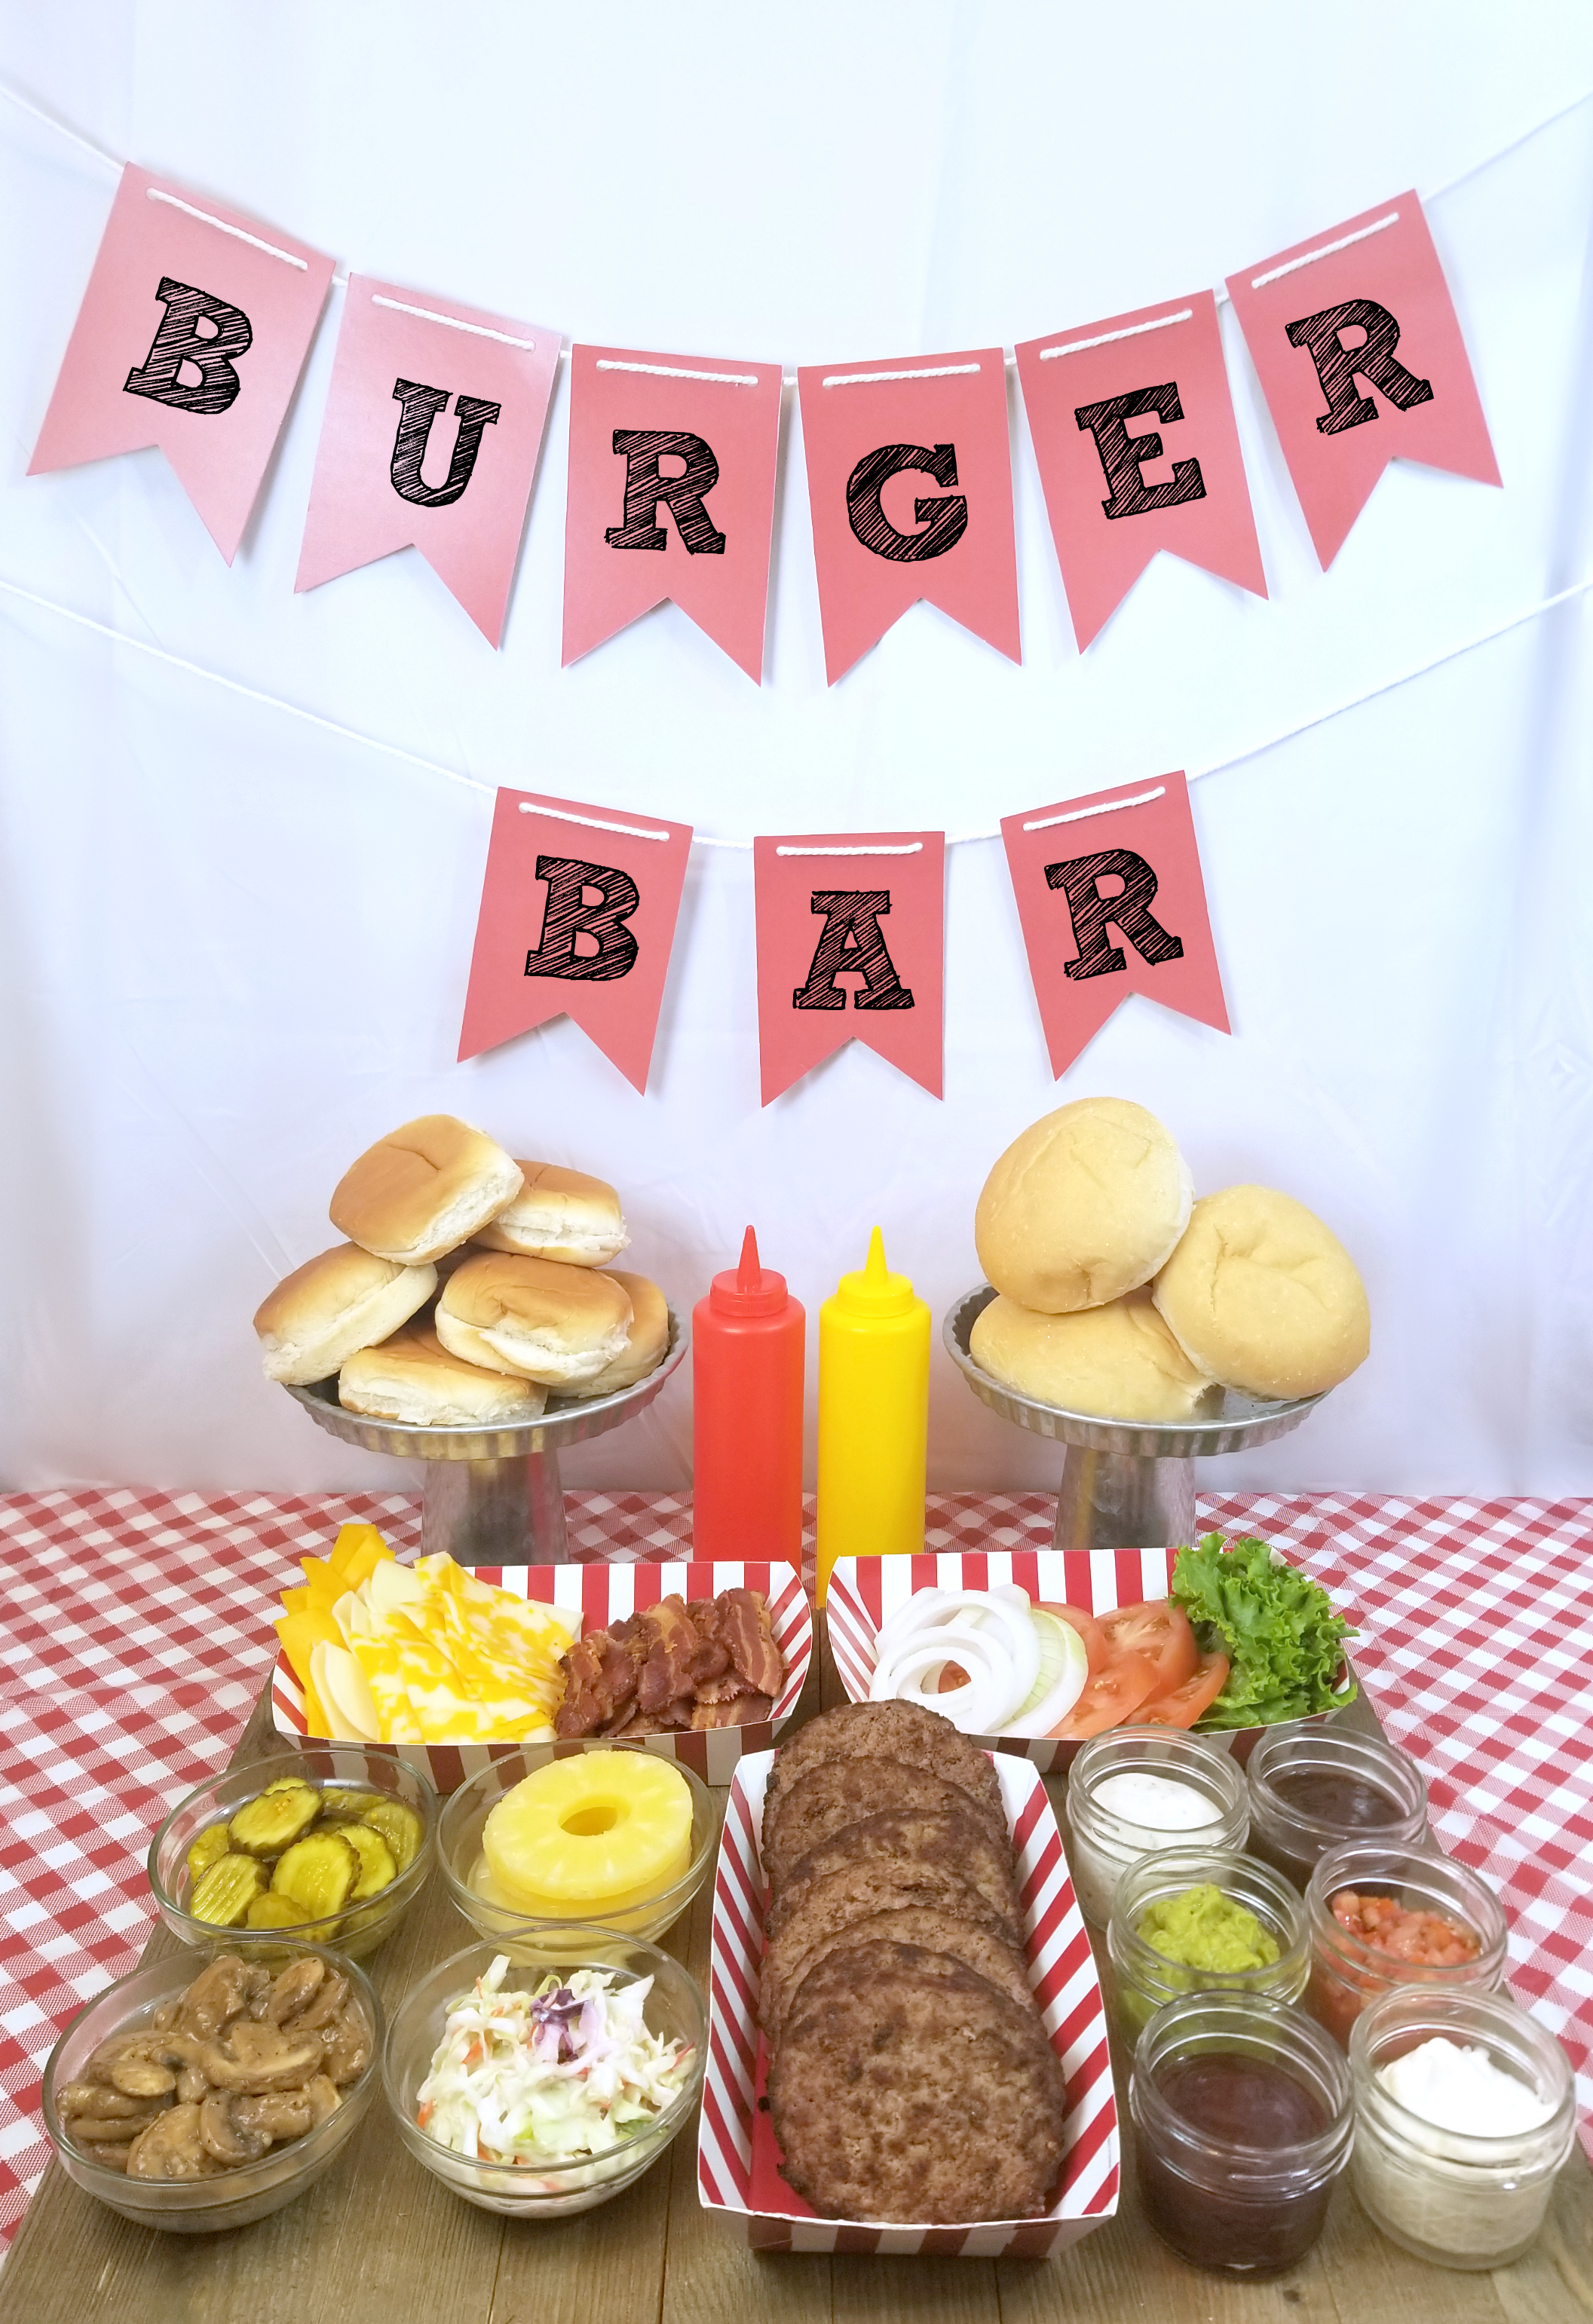 Burger Bar Ideas and Topping Suggestions